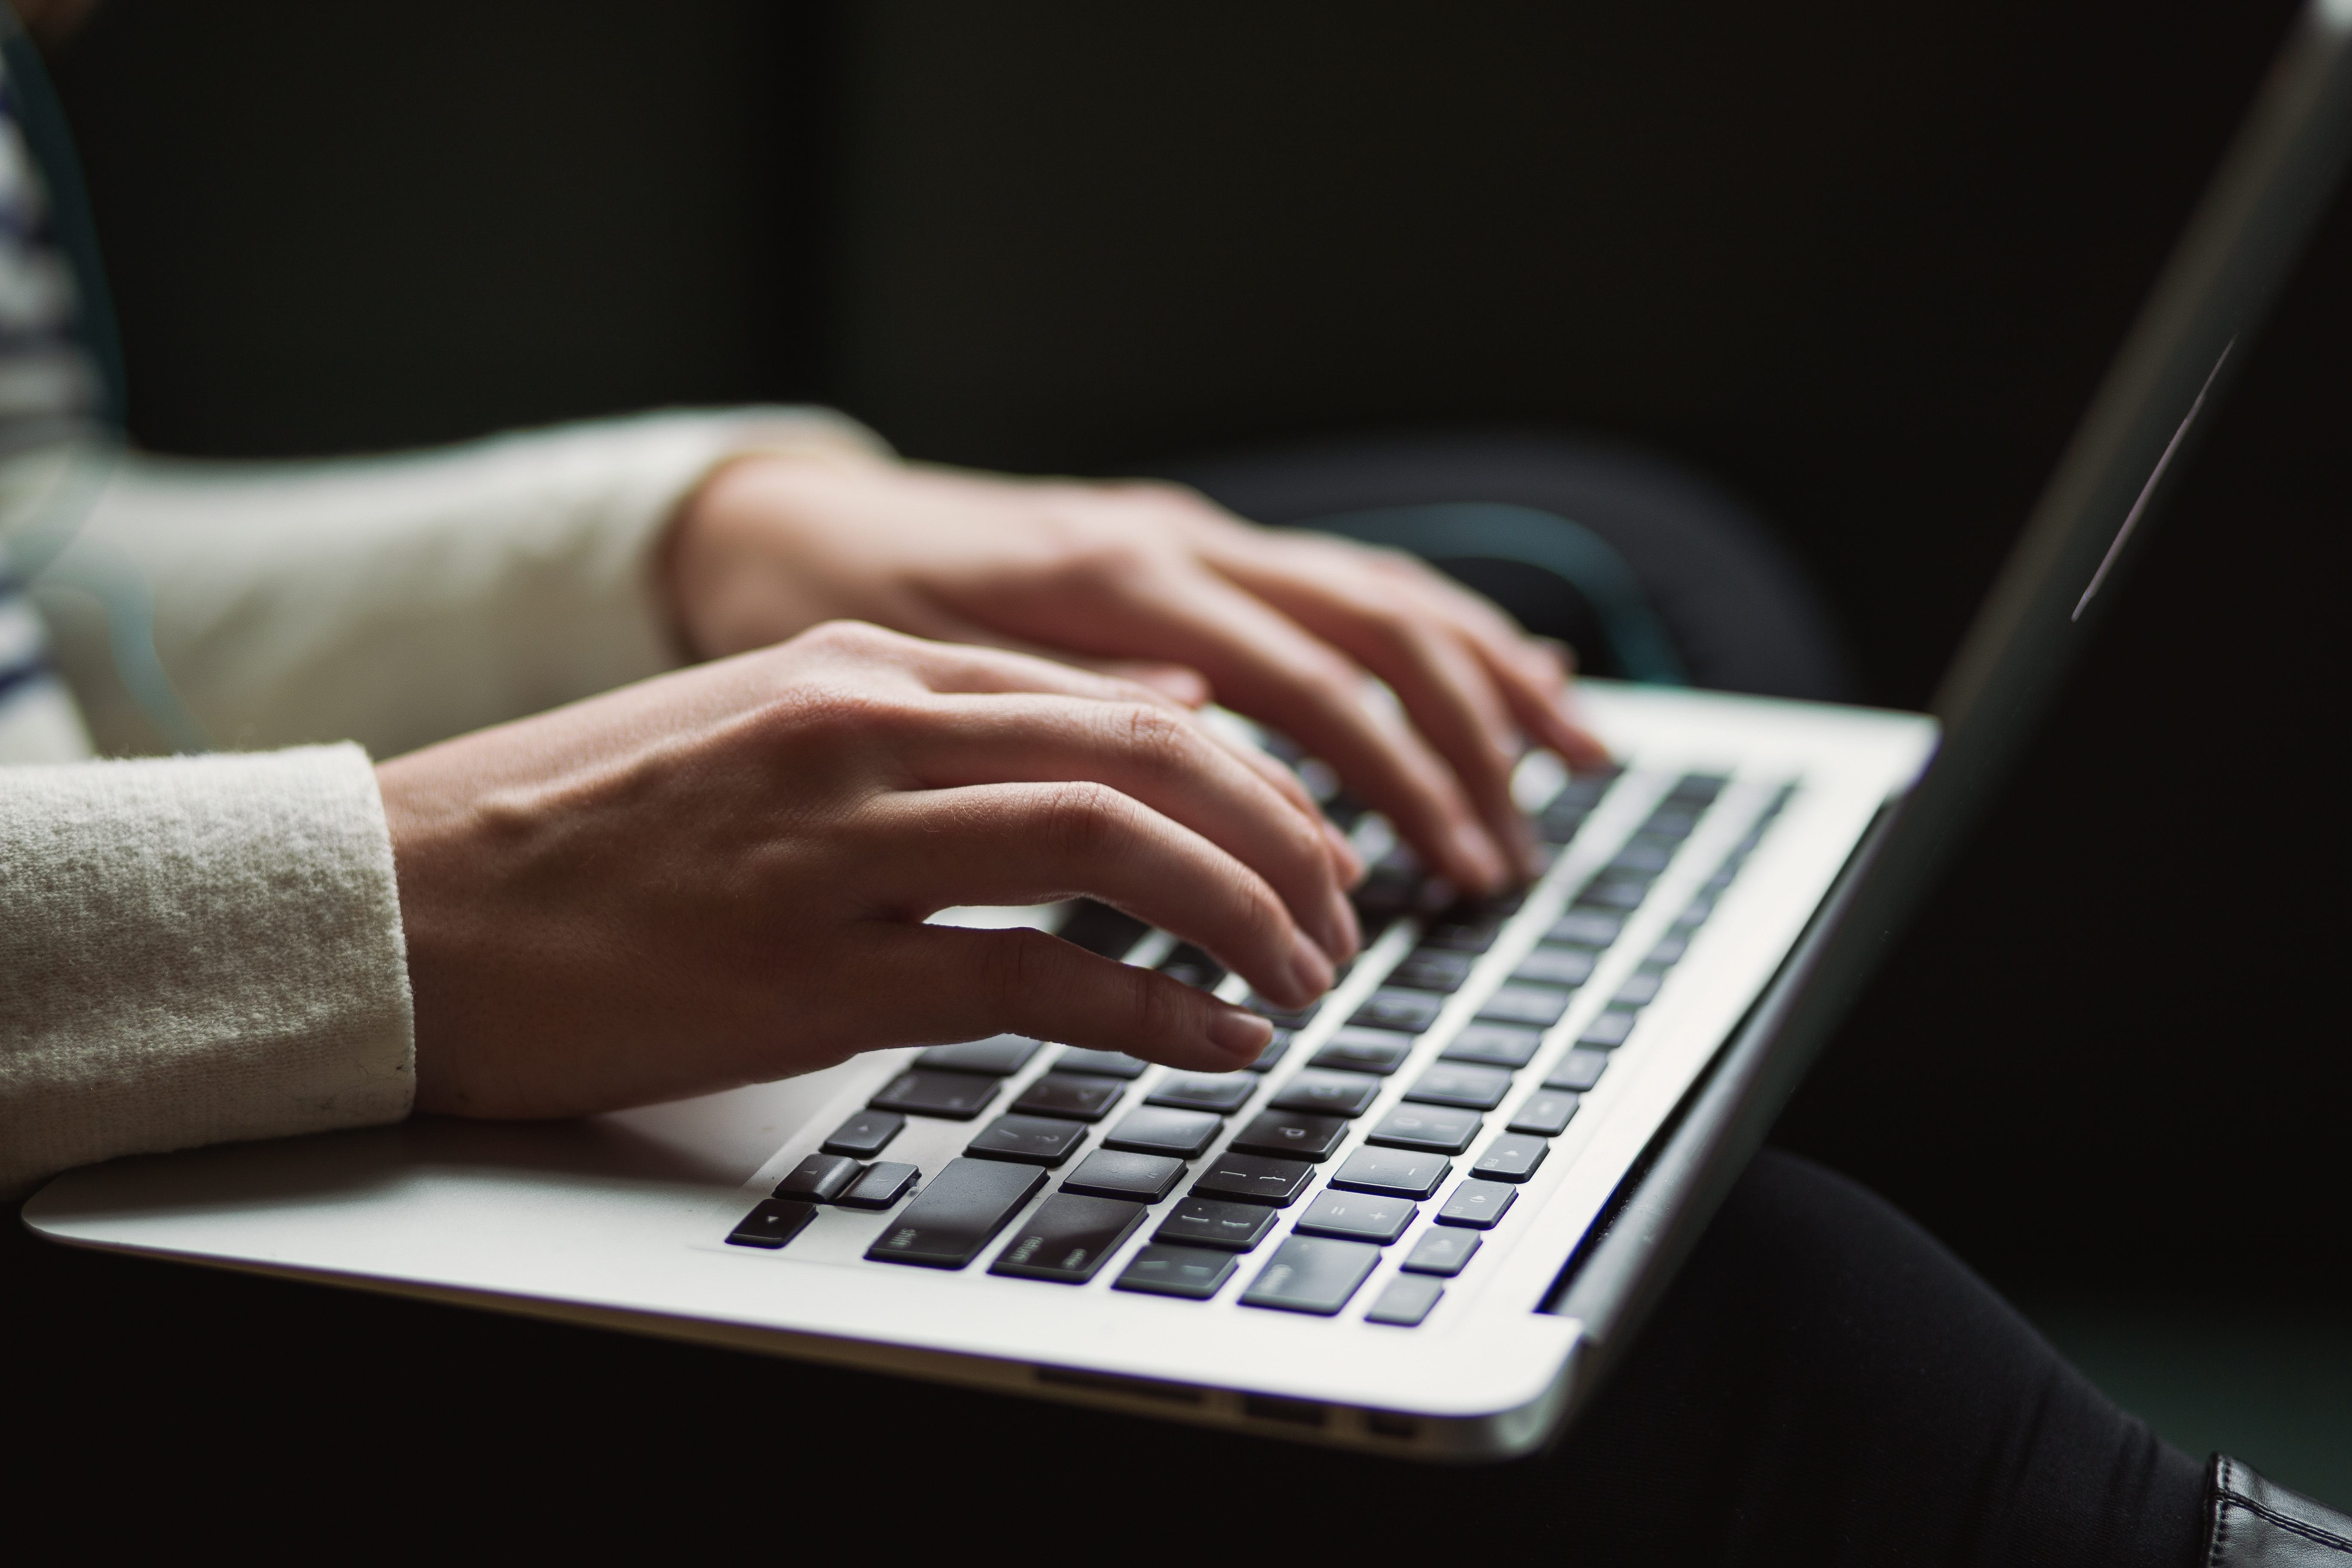 Person using laptop; image by Kaitlyn Baker, via Unsplash.com.